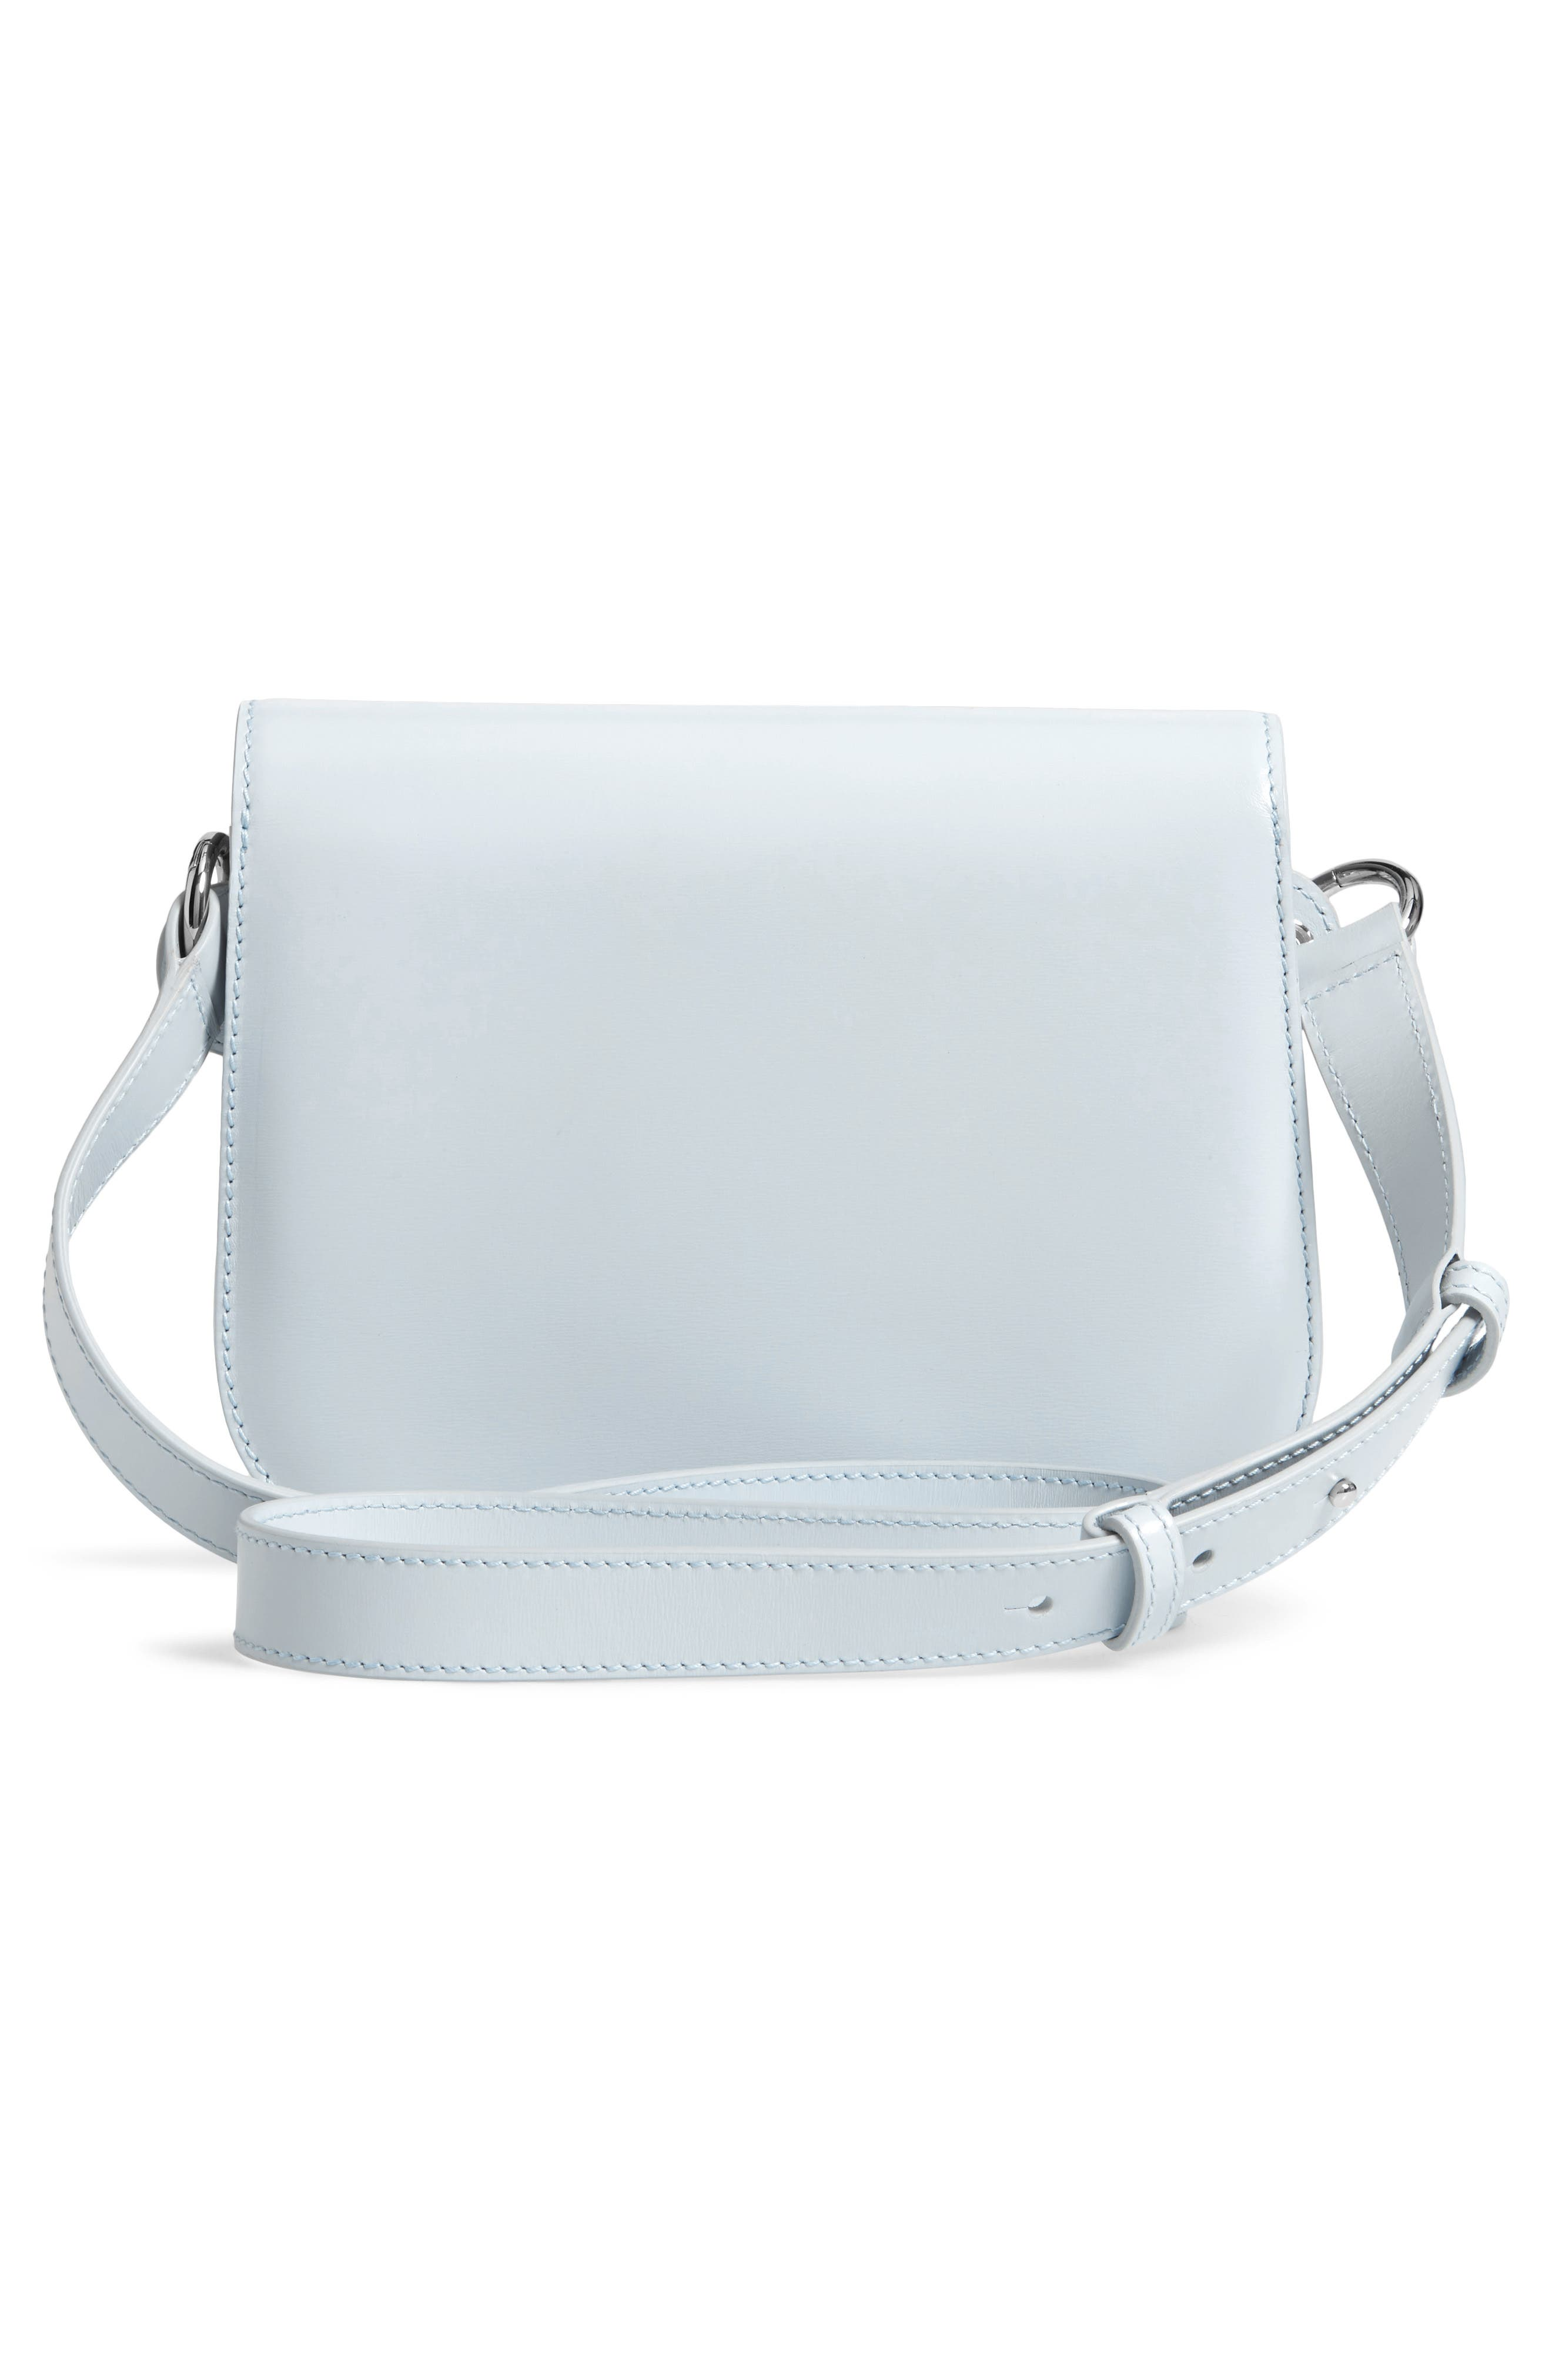 Small Round Lock Leather Shoulder Bag,                             Alternate thumbnail 3, color,                             CLOUD